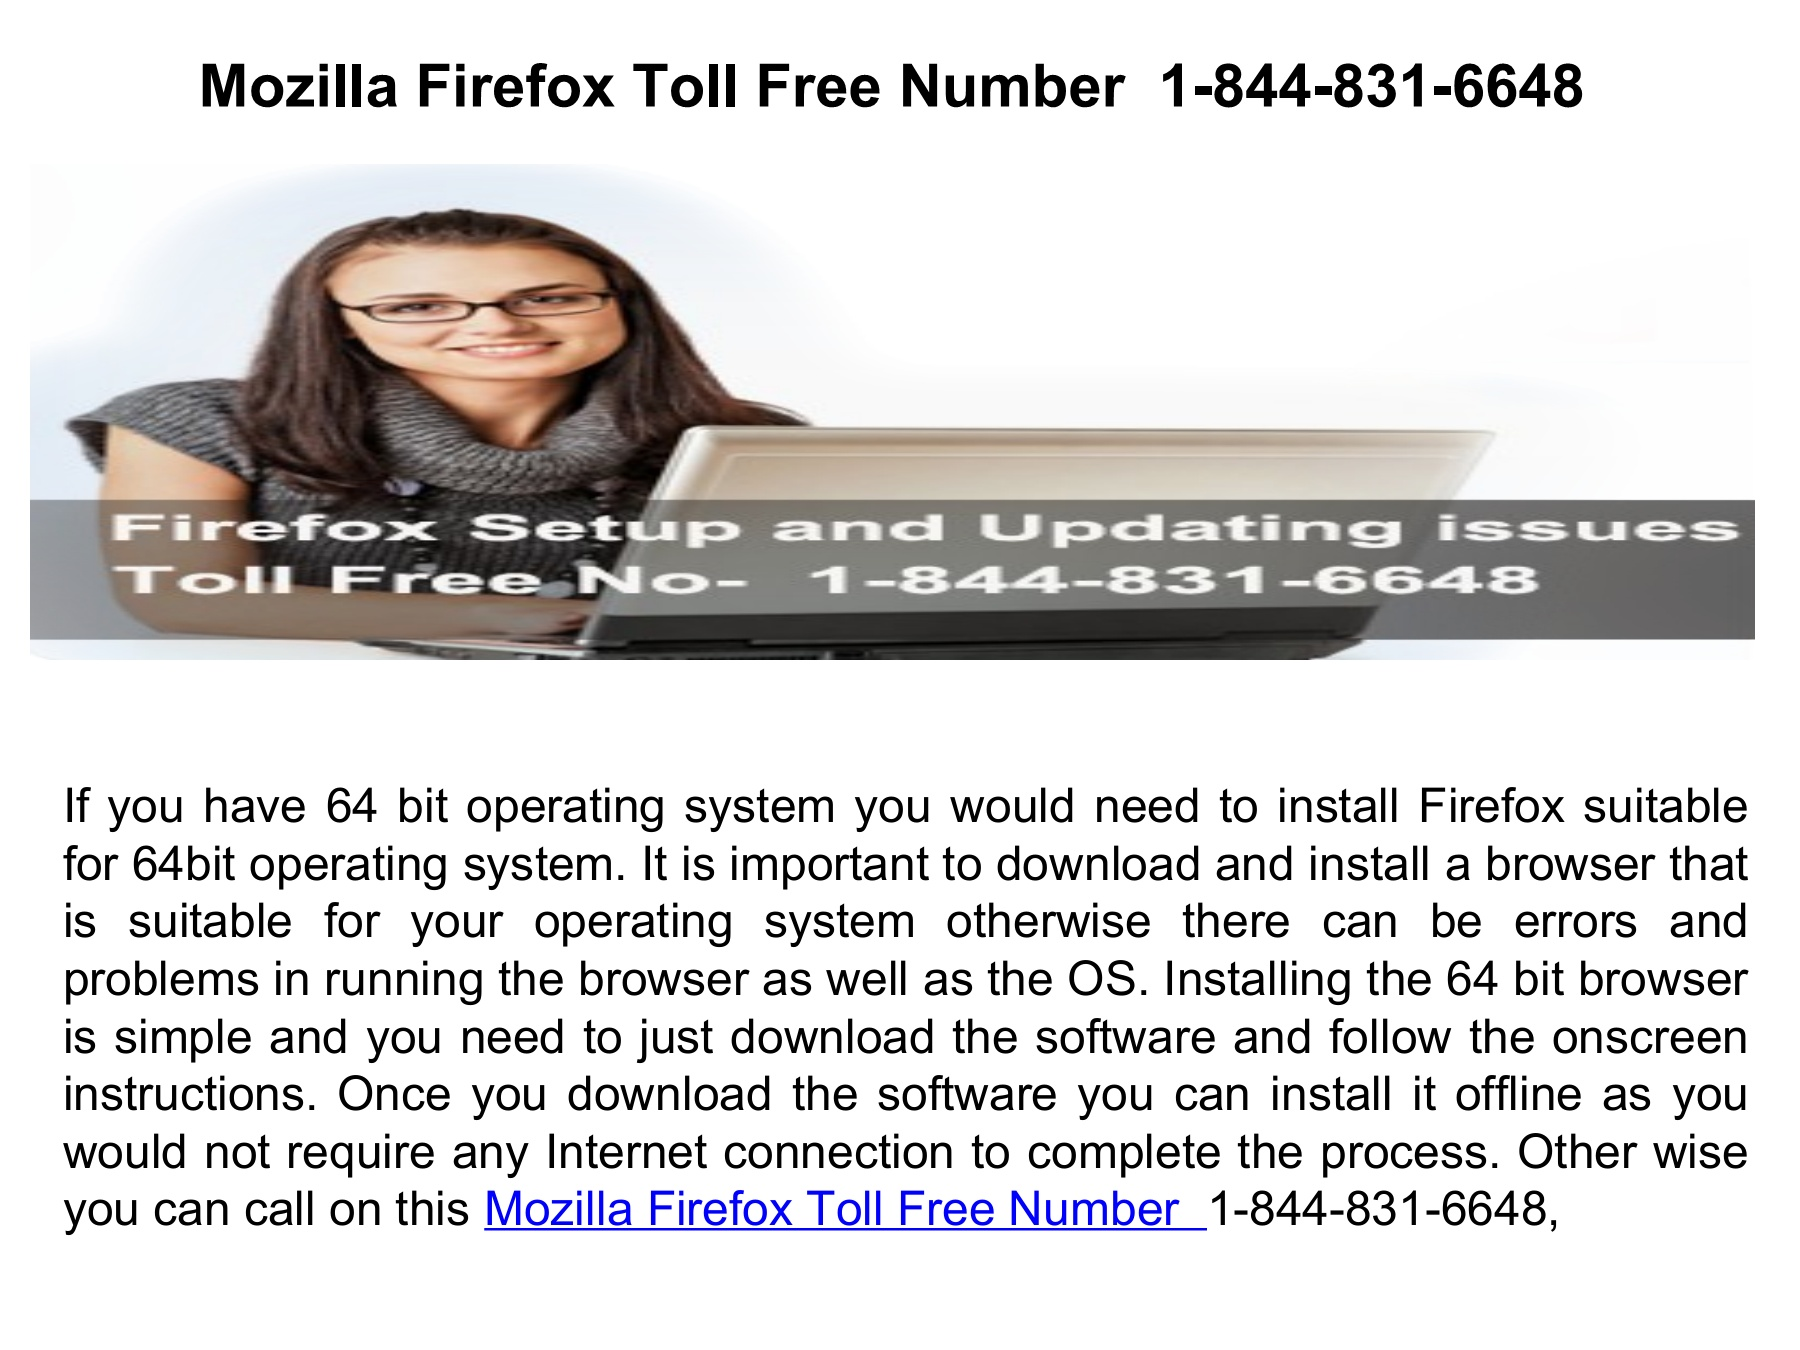 Mozilla Firefox Chat Support 1-844-831-6648